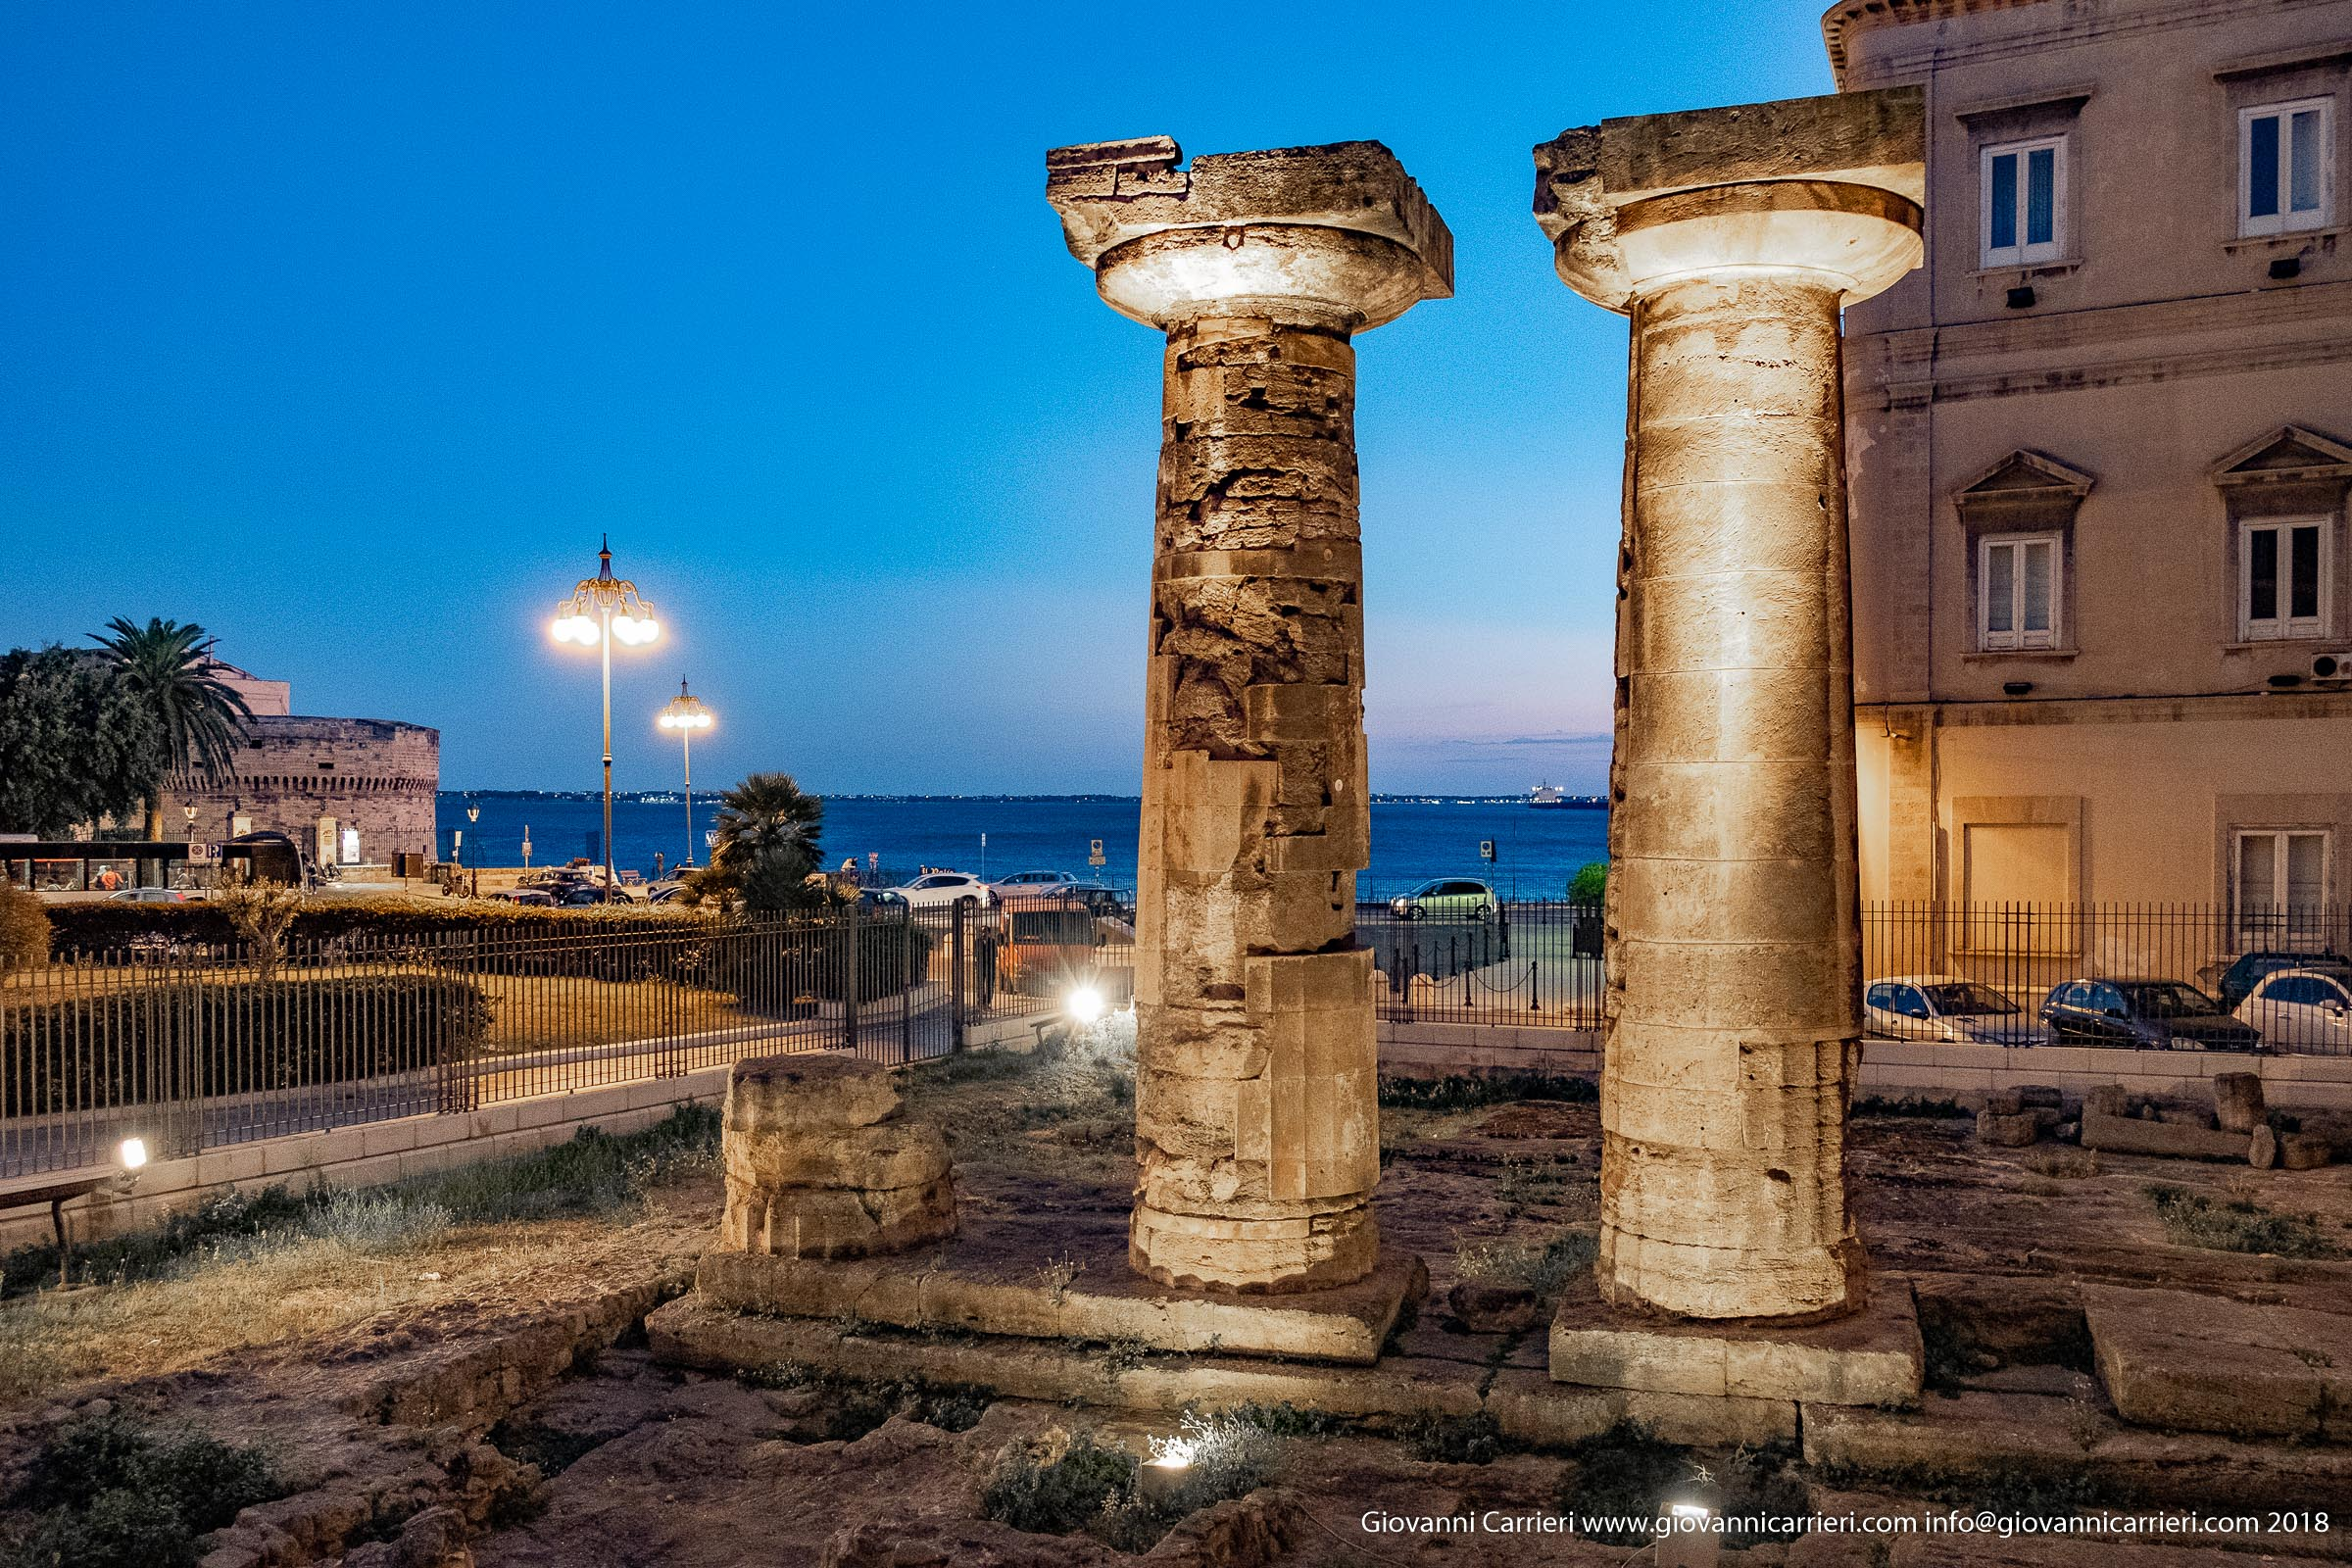 The Doric temple of Taranto